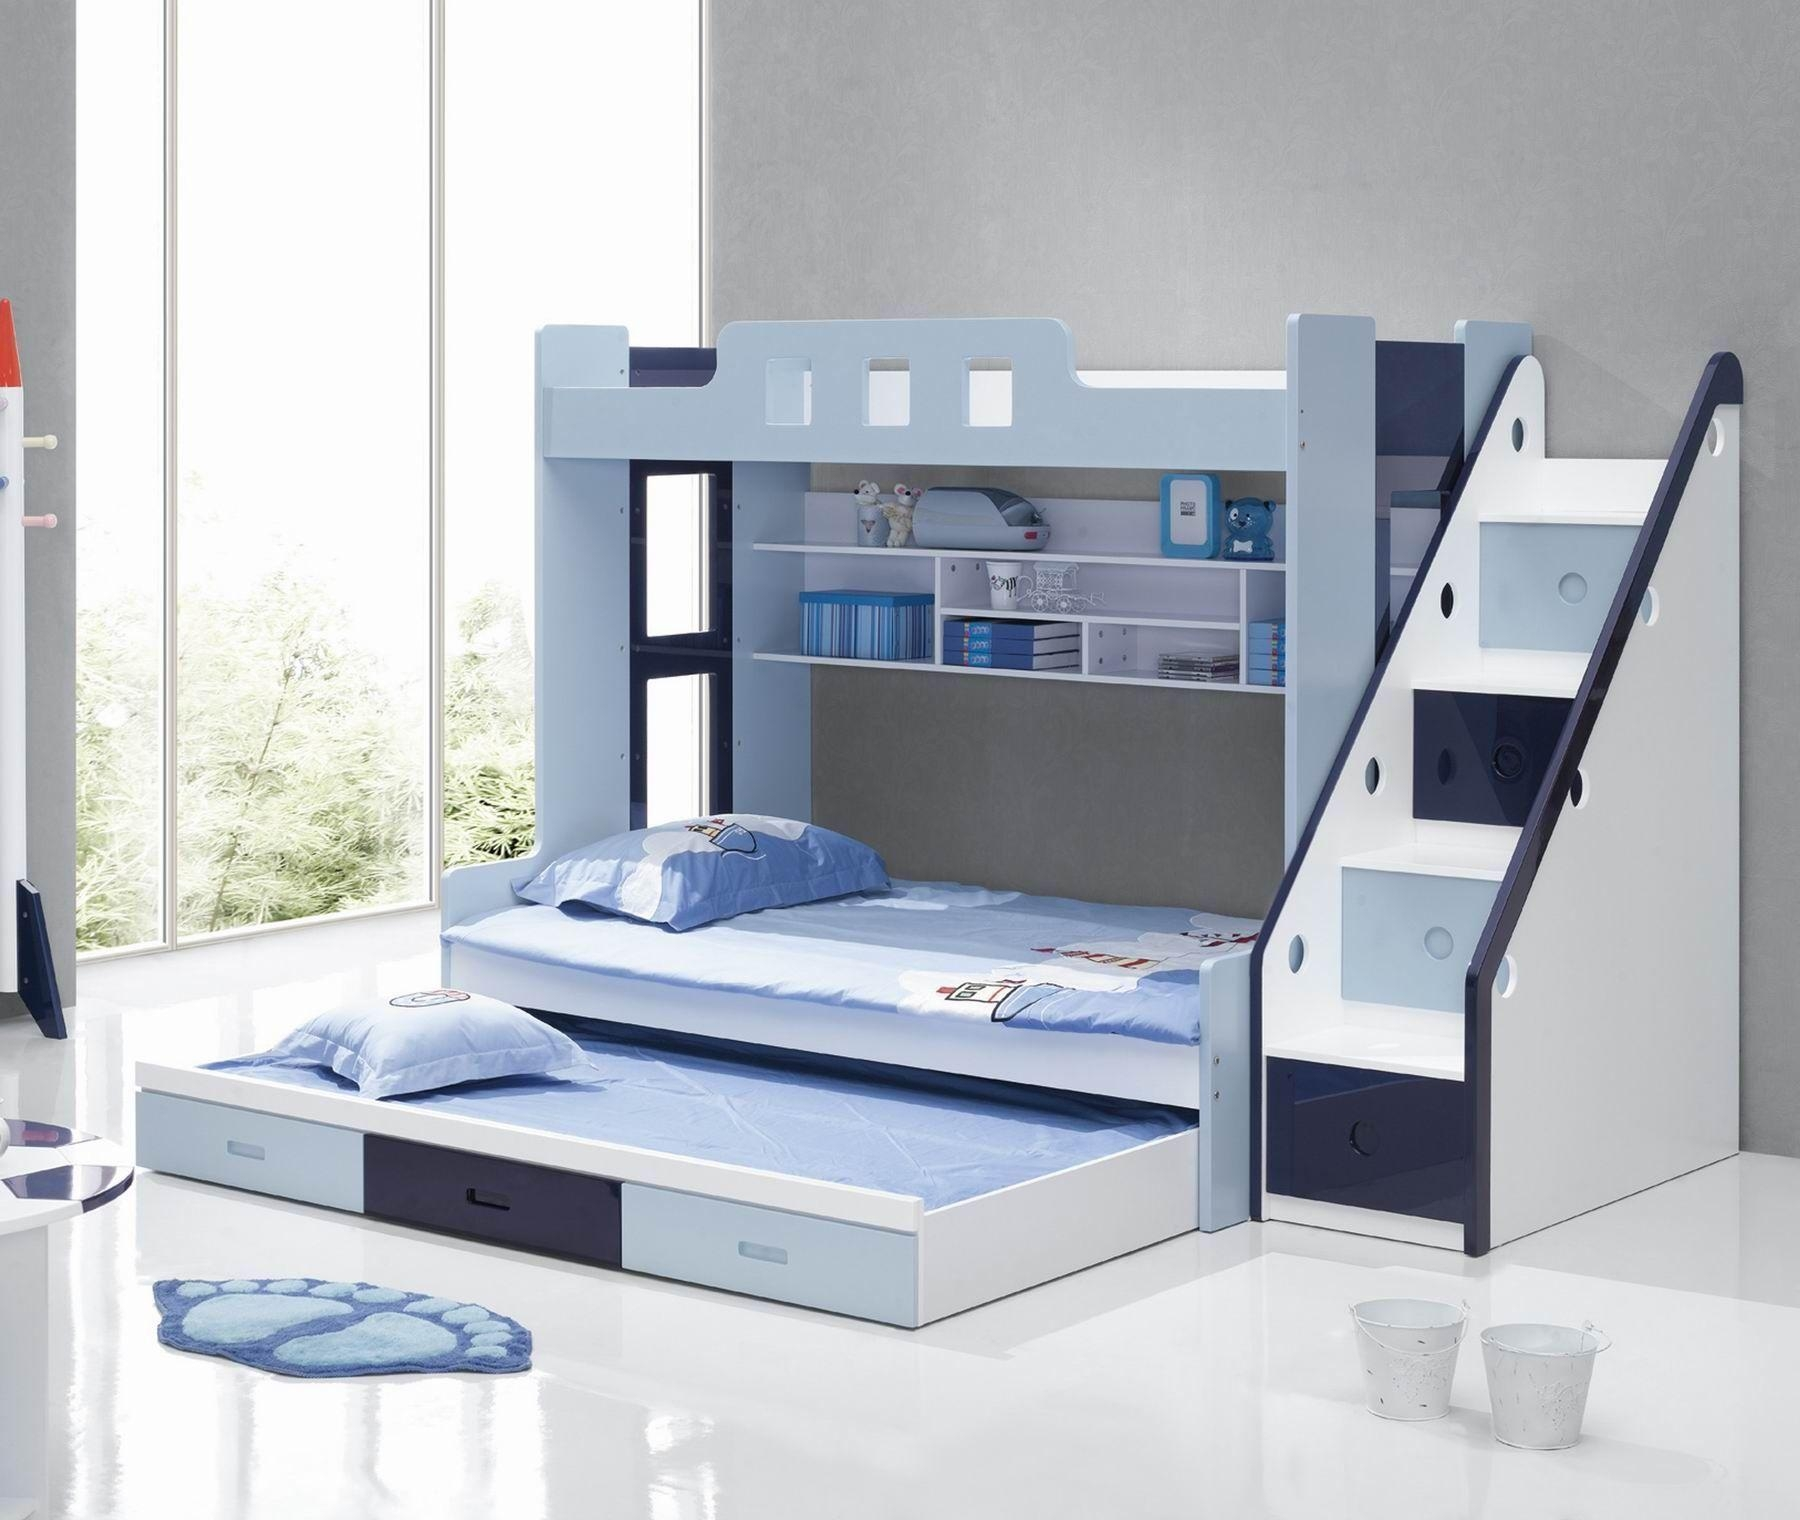 Exquisite Bunk Bed Pull Out Couch Converting Couch Sofa Loft Beds Intended For Sofas Converts To Bunk Bed (Image 14 of 20)